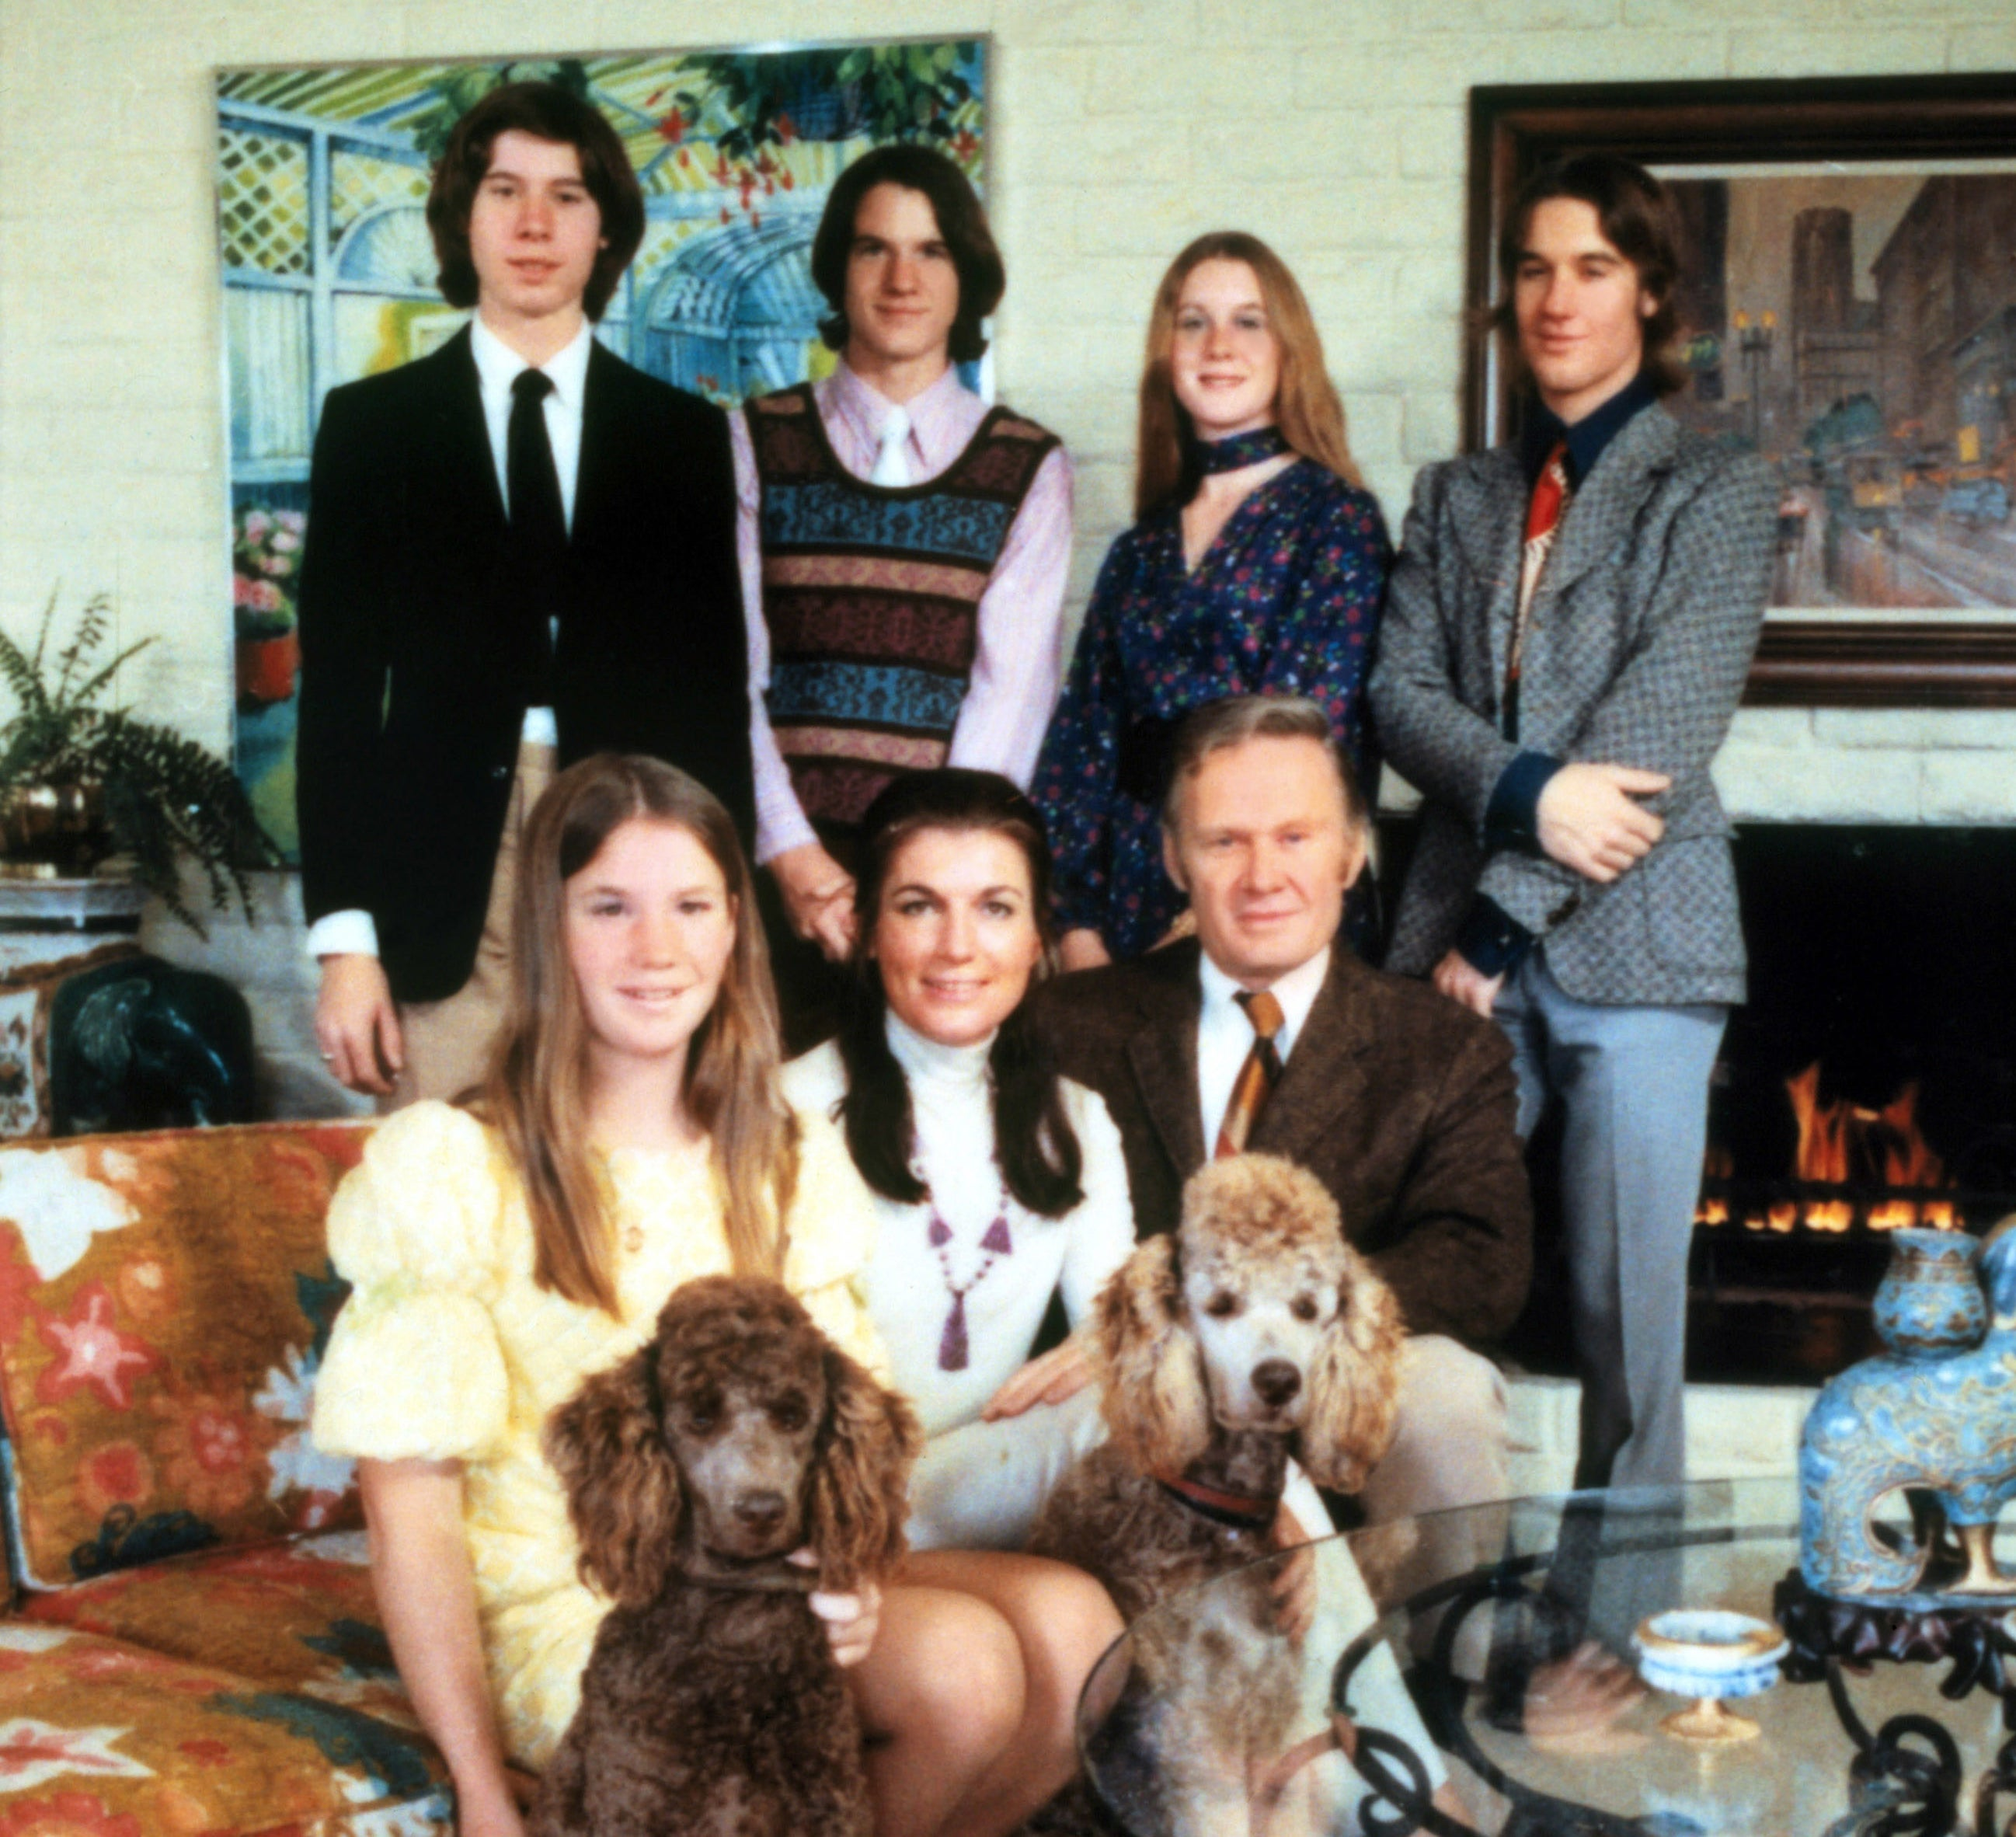 A promotional photo of the family from An American Family